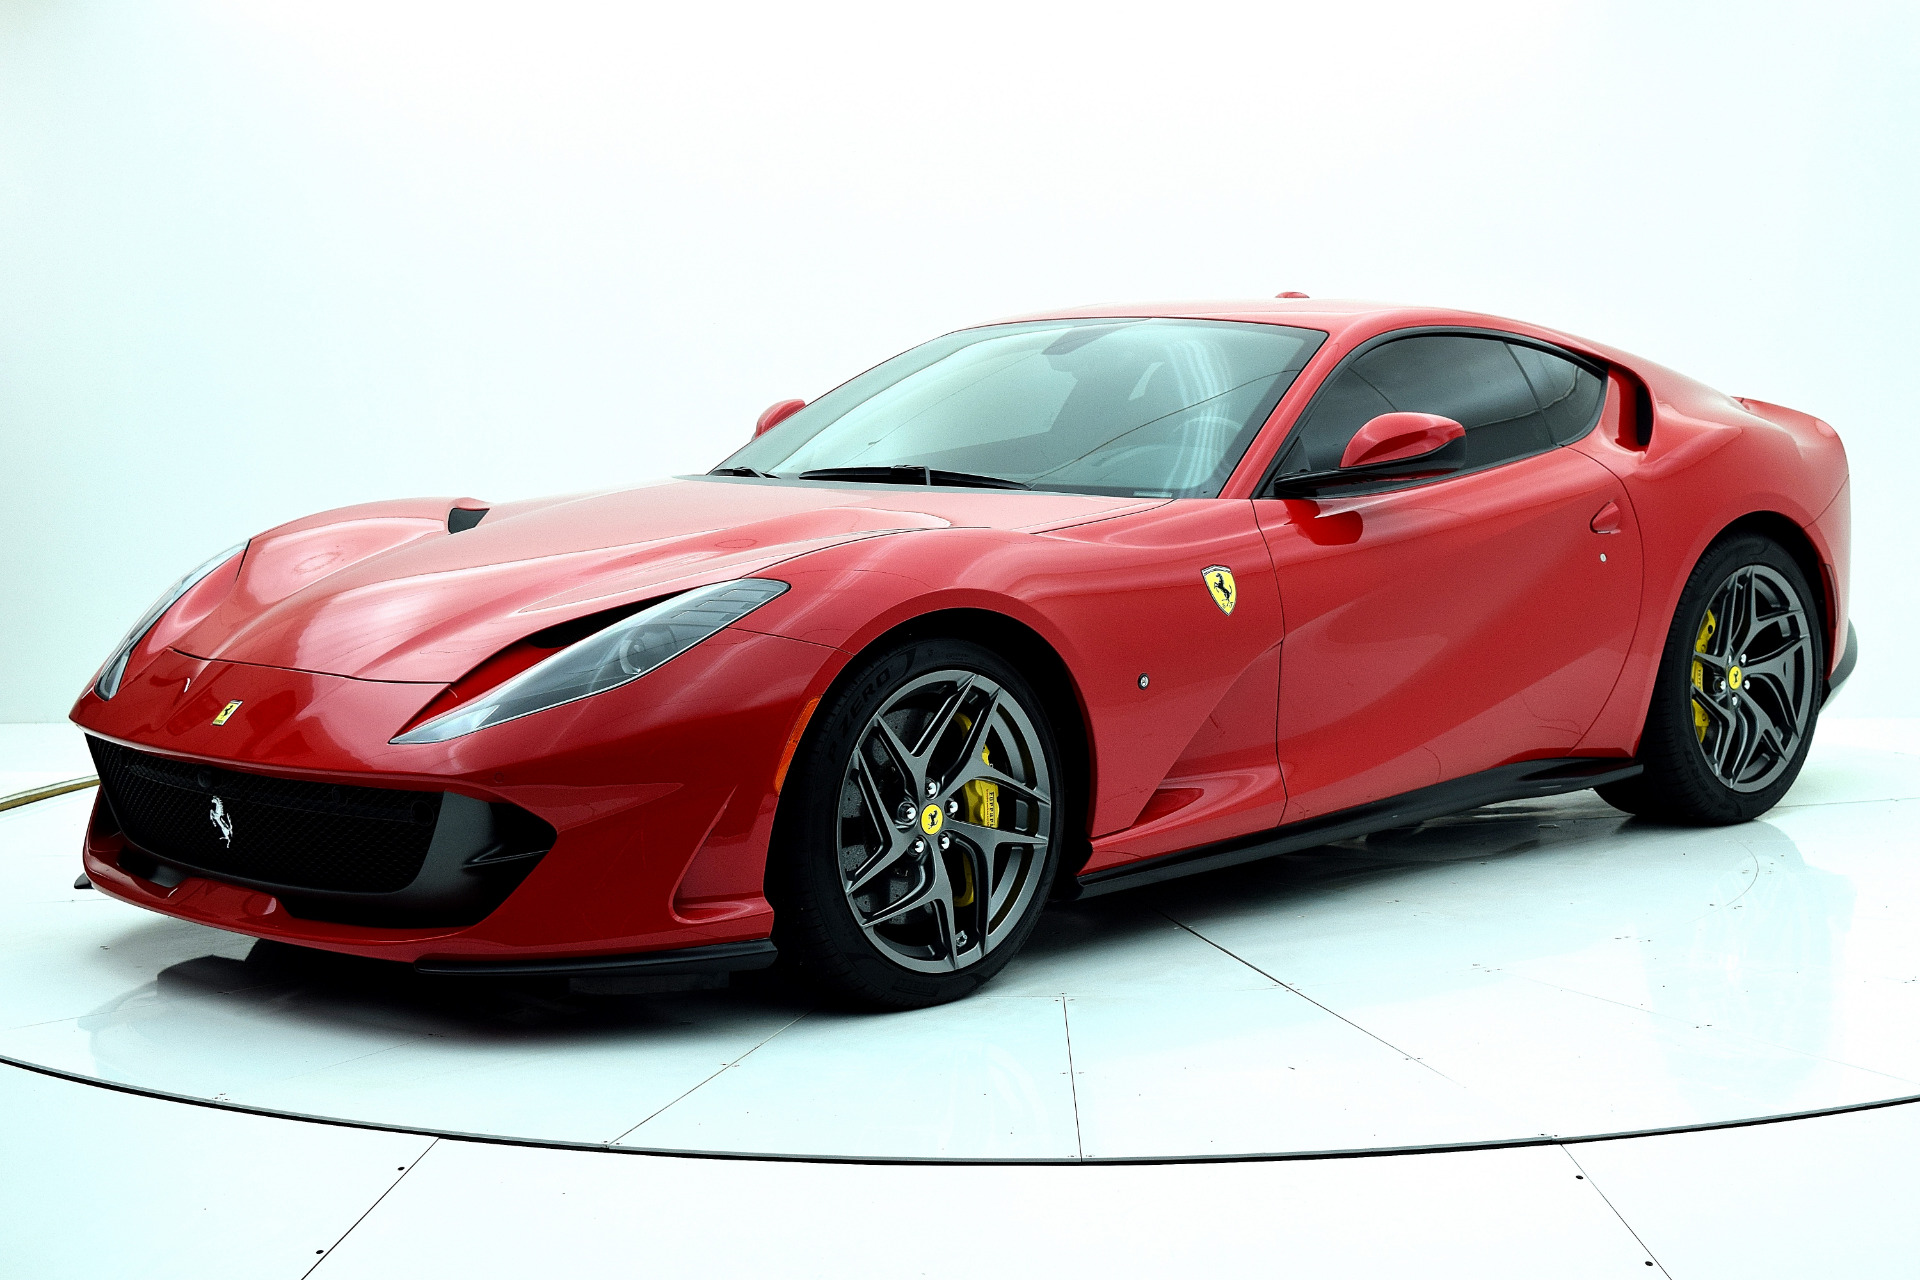 Ferrari 812 Superfast 2019 Rosso Corsa For Sale $425661 Stock Number 19L120AJI